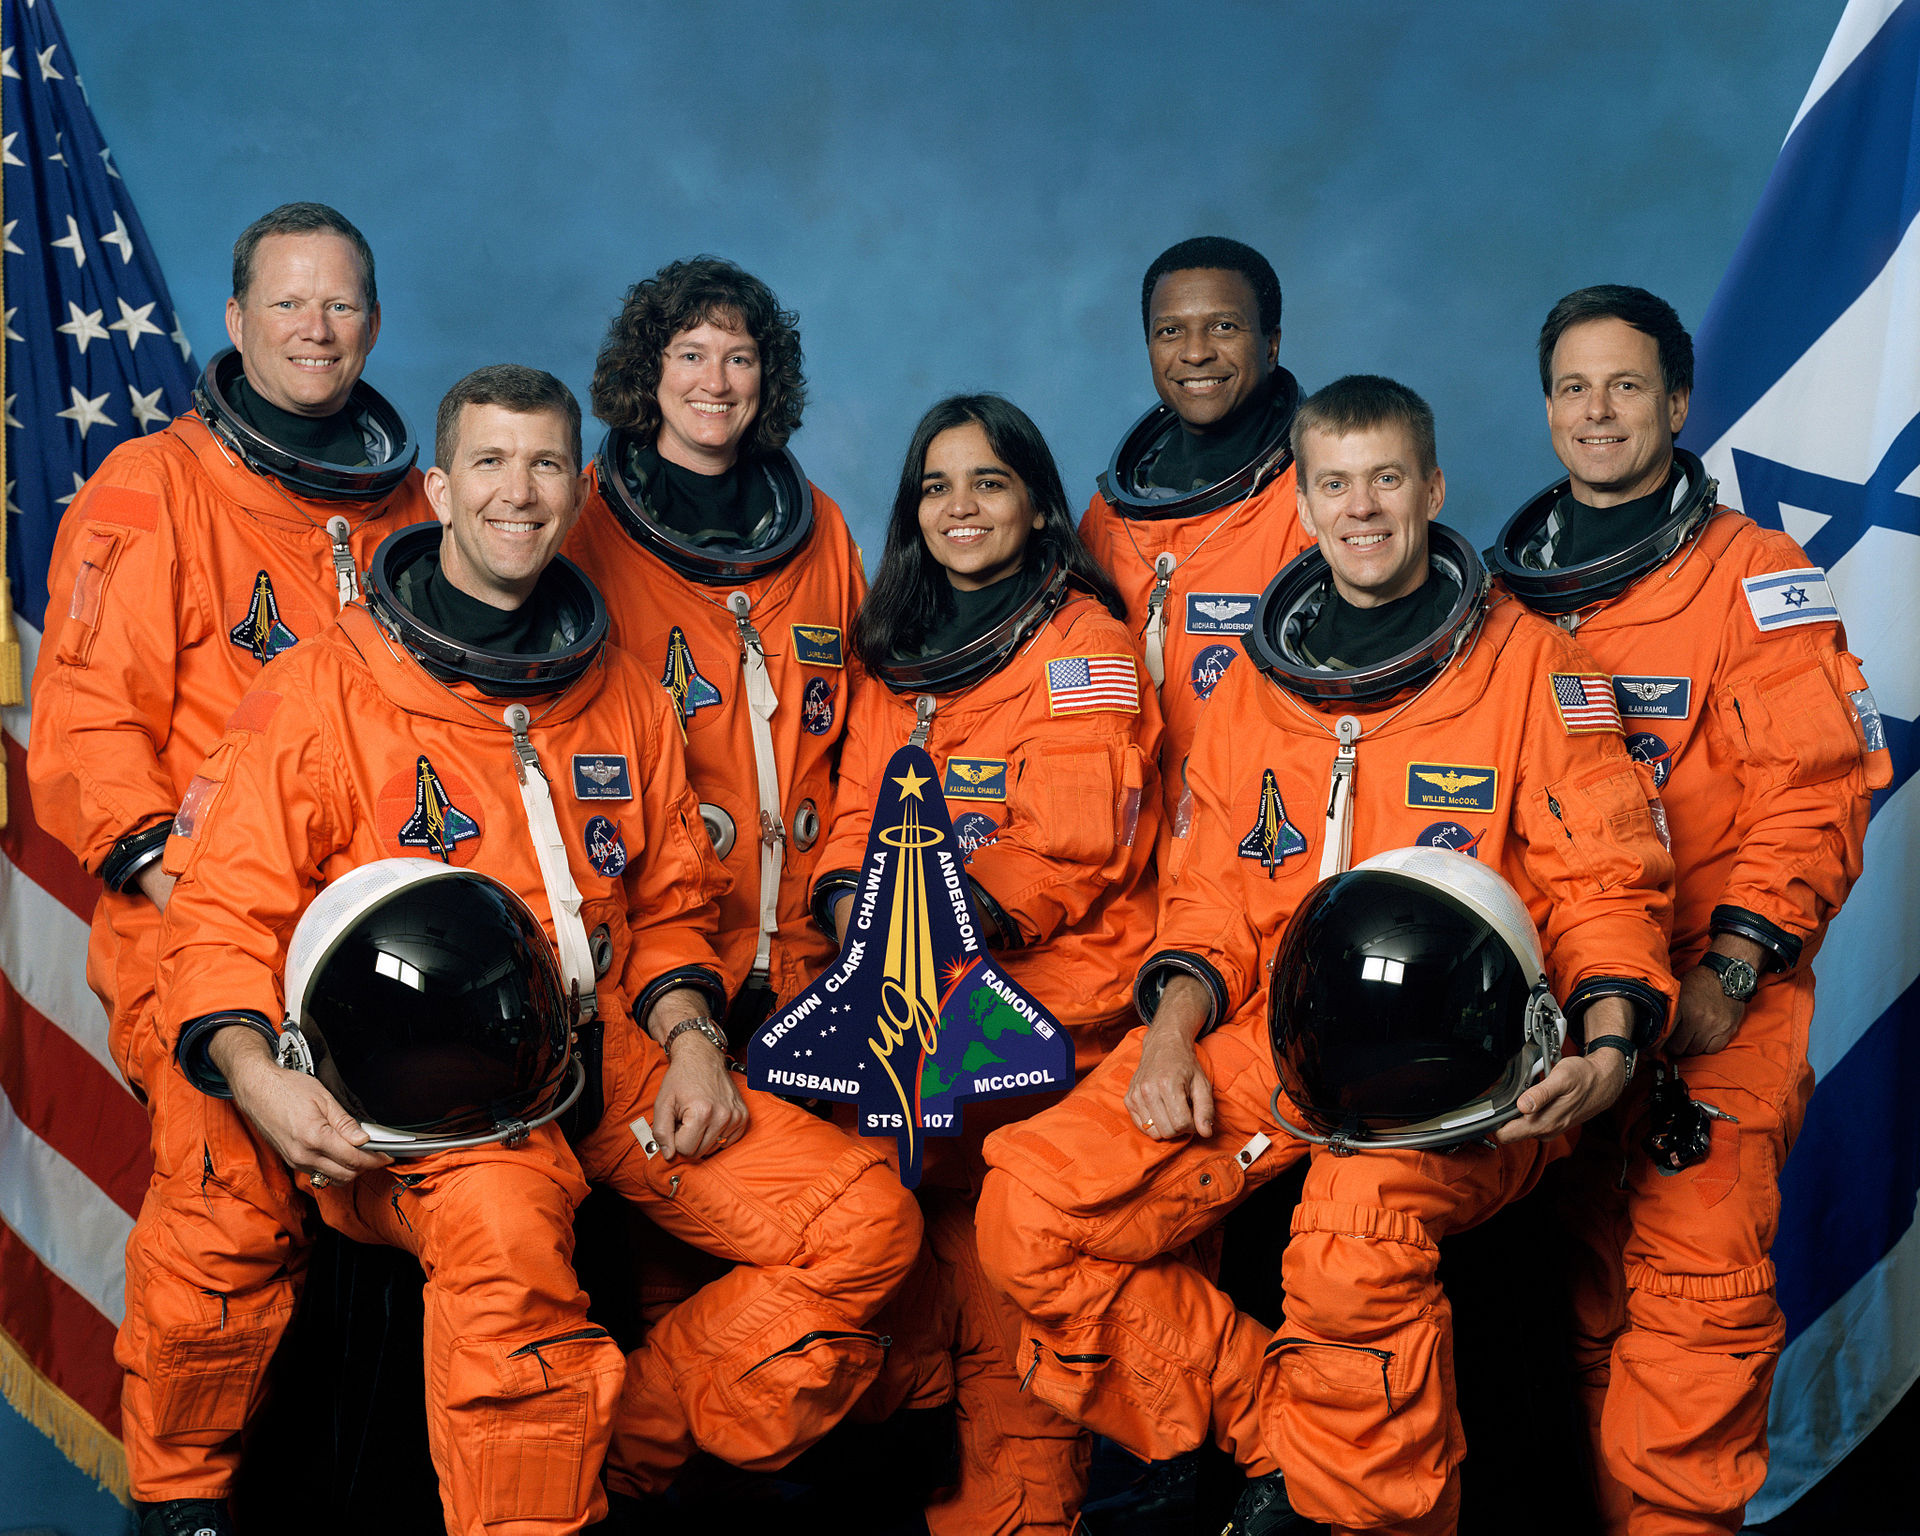 The crew of STS-107 in October 2001. From left to right: Brown, Husband, Clark, Chawla, Anderson, McCool, Ramon